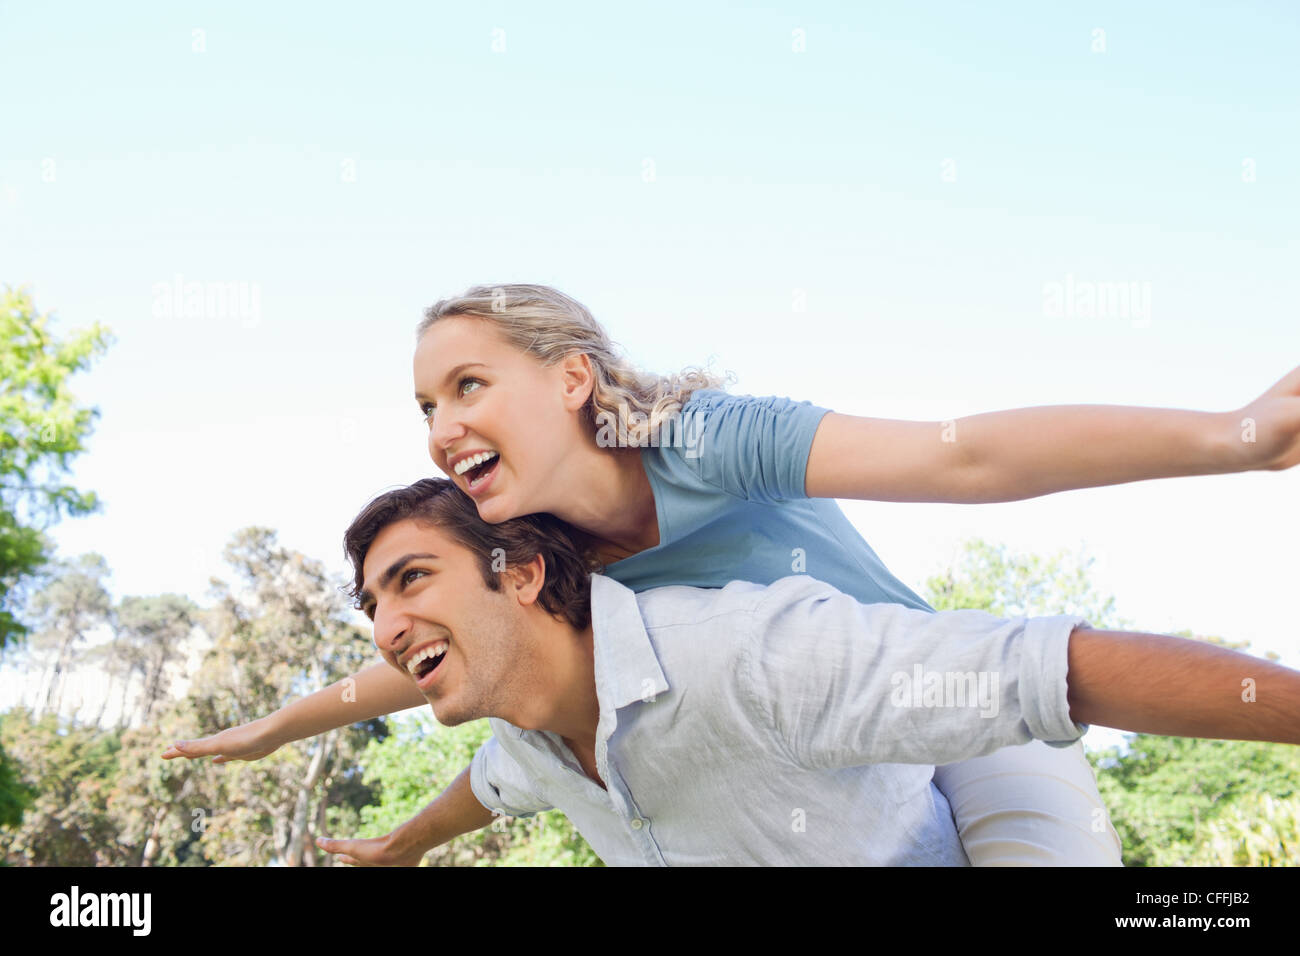 Man carrying his his friend on his back while she spreads her arms - Stock Image